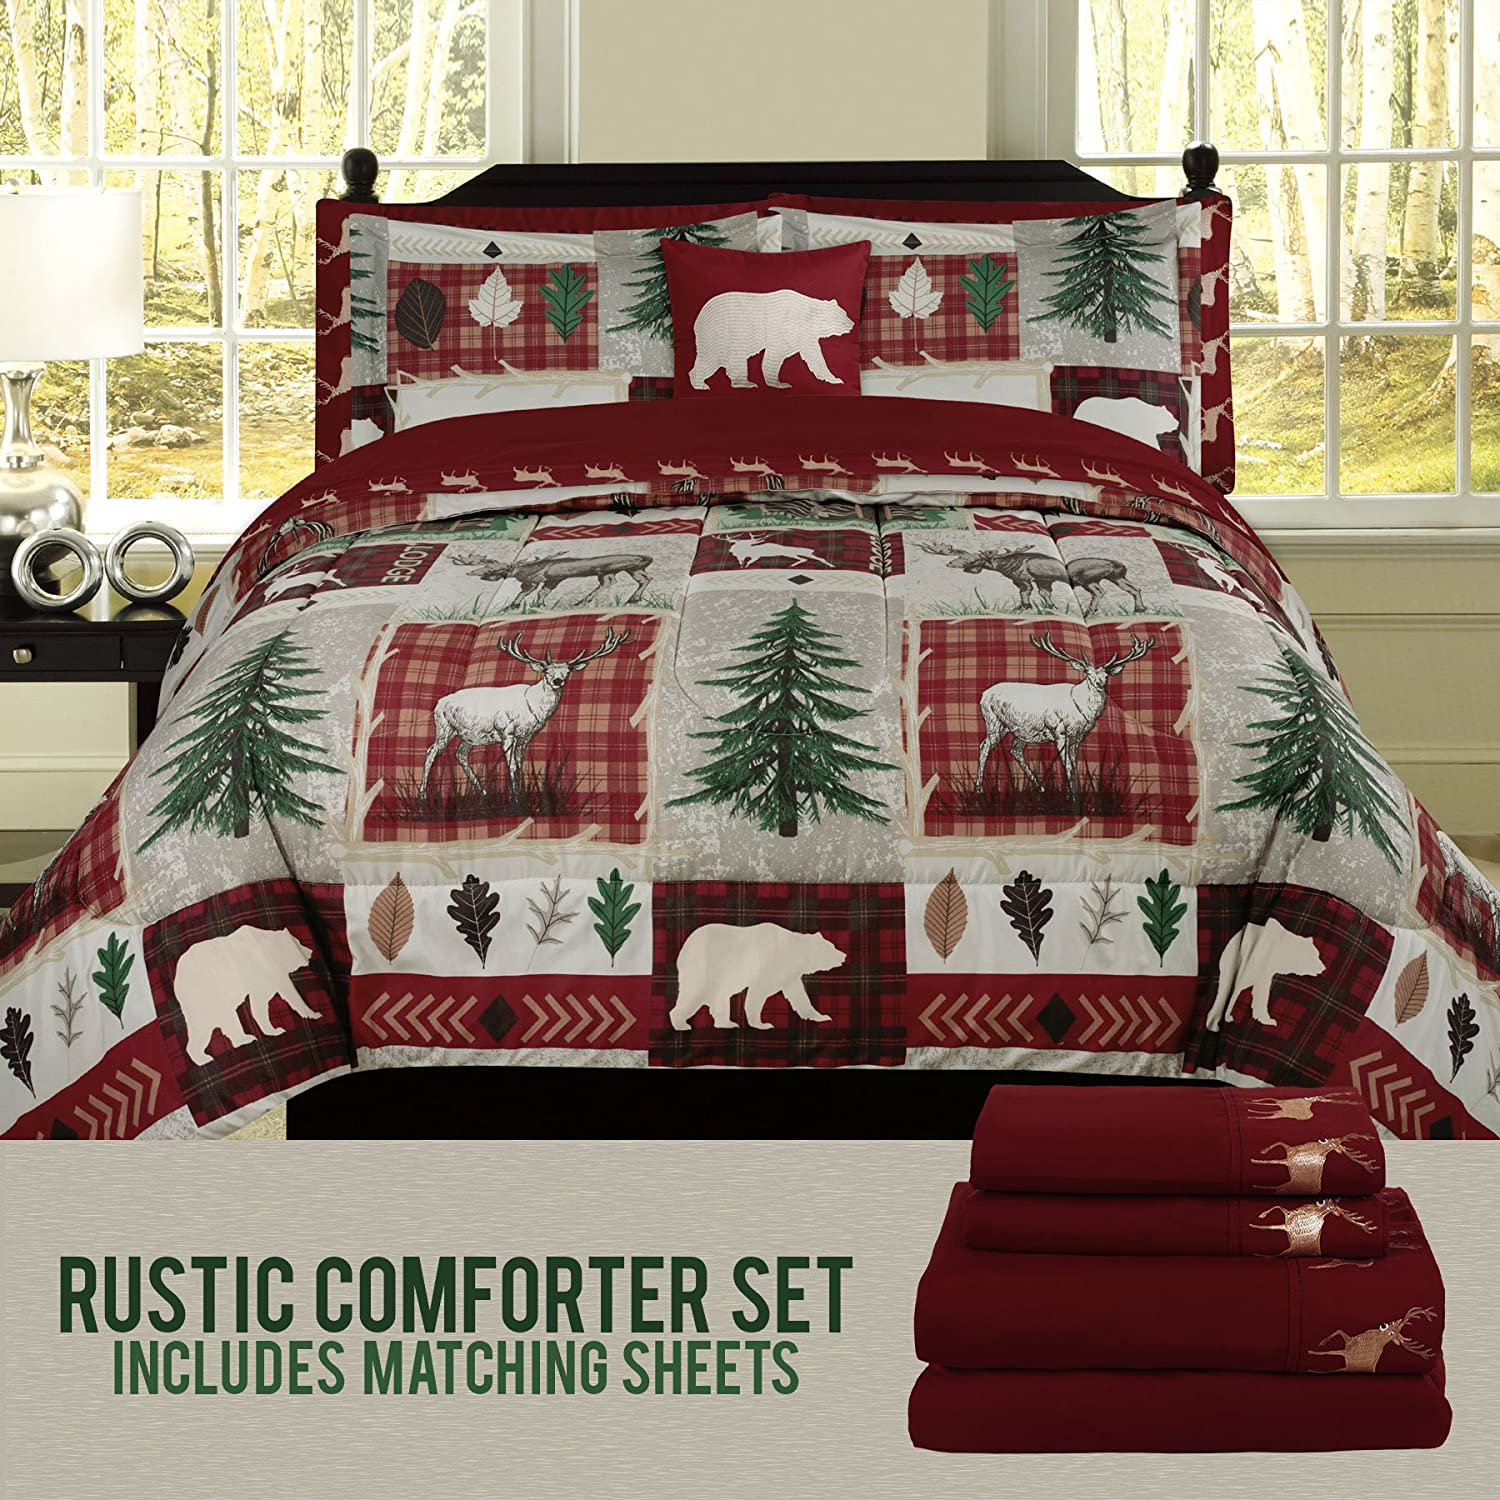 comforter budget cabin comforters friendly bedding quilt moose themed set style mountain lodge log rustic retreat sets hunting